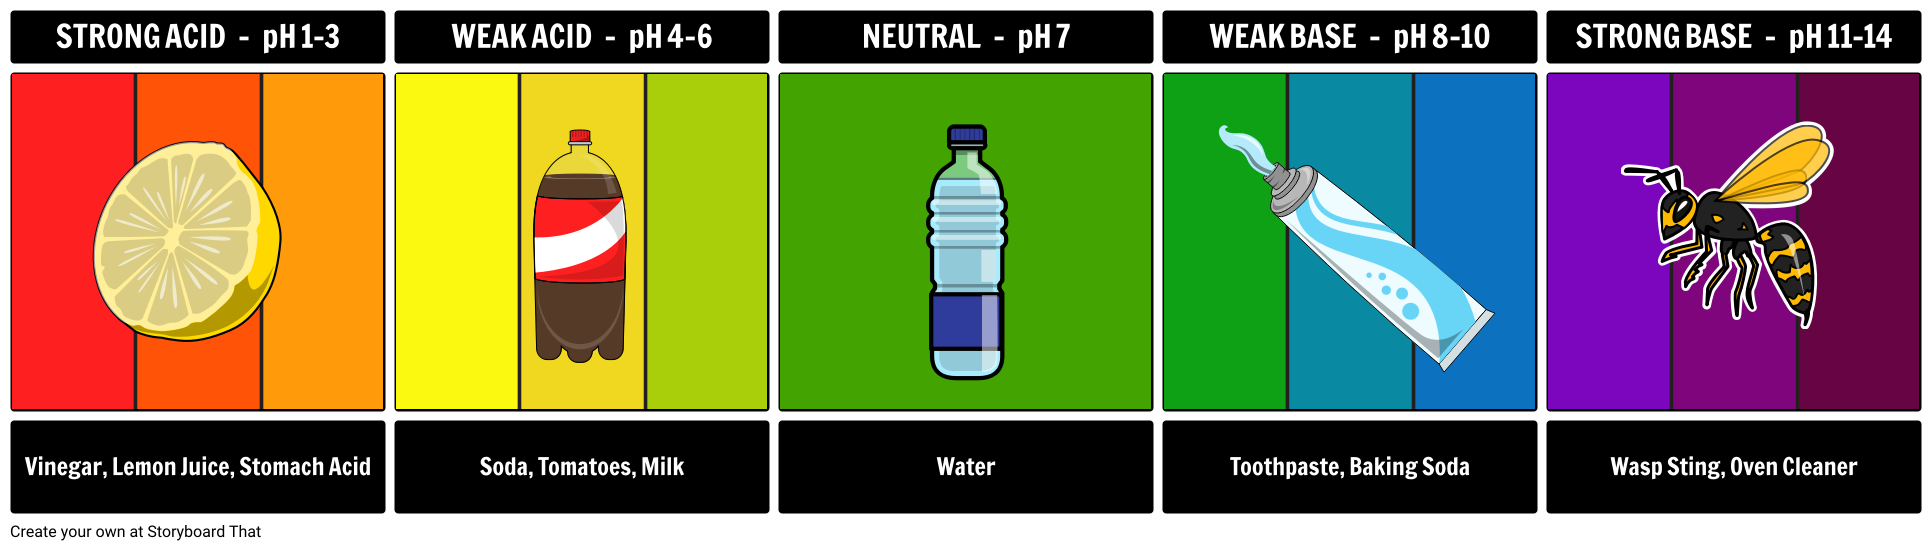 Acids And Bases  Ph Scale The Ph Scale Is Used To Compare